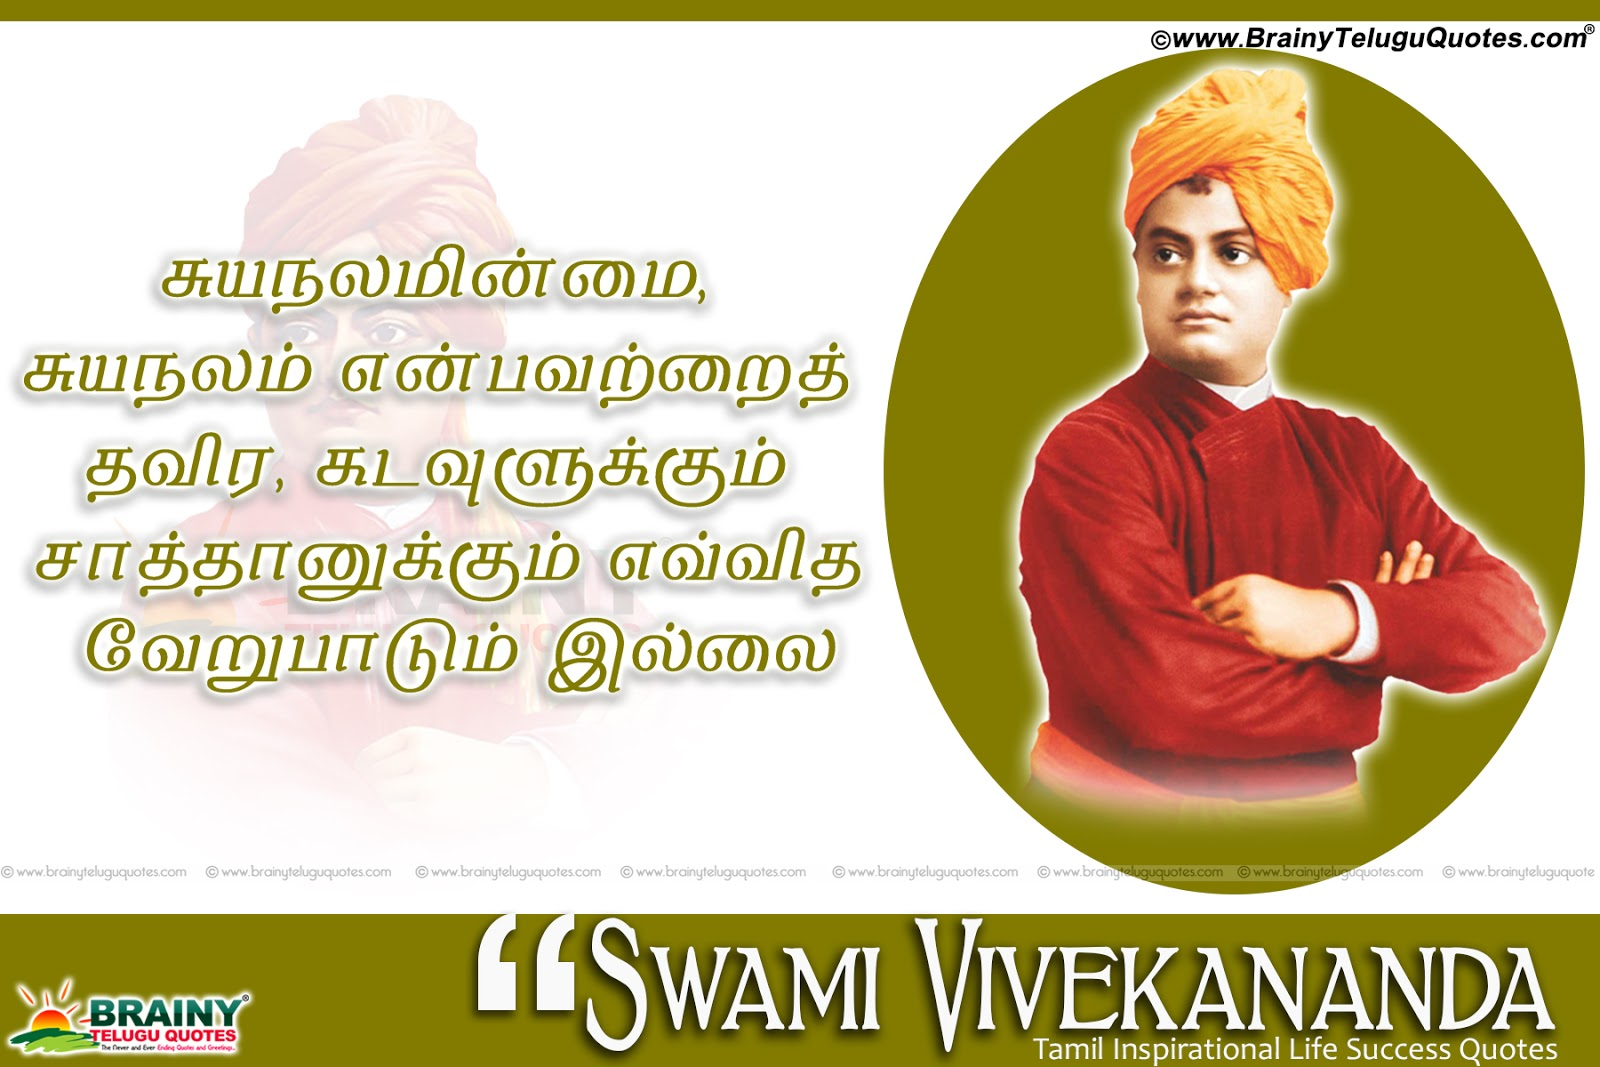 Swami Vivekananda Quotes Wallpapers In Kannada Tamil Swami Vivekananda Golden Words With Images